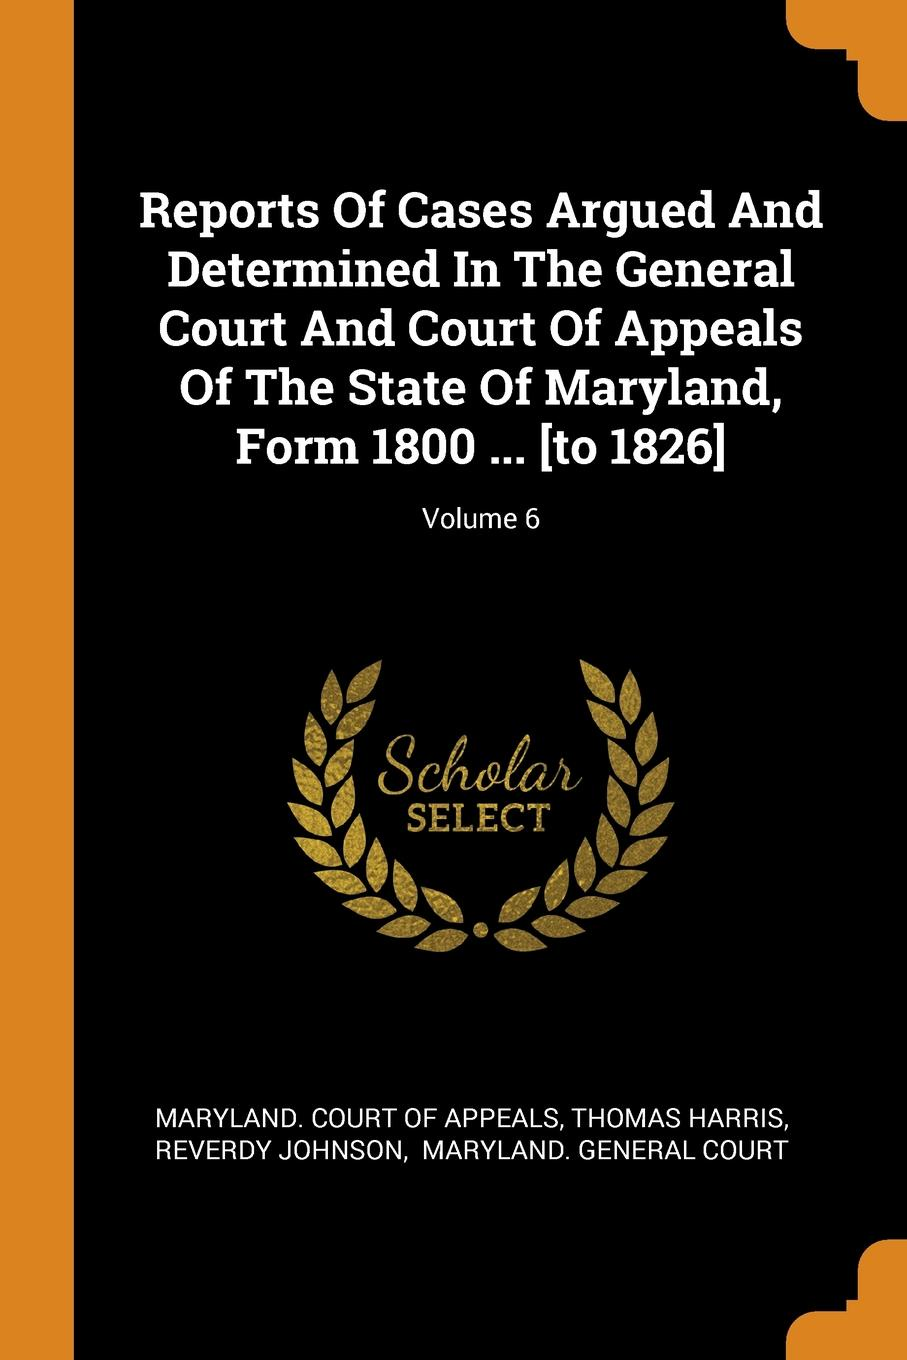 Thomas Harris, Reverdy Johnson Reports Of Cases Argued And Determined In The General Court And Court Of Appeals Of The State Of Maryland, Form 1800 ... .to 1826.; Volume 6